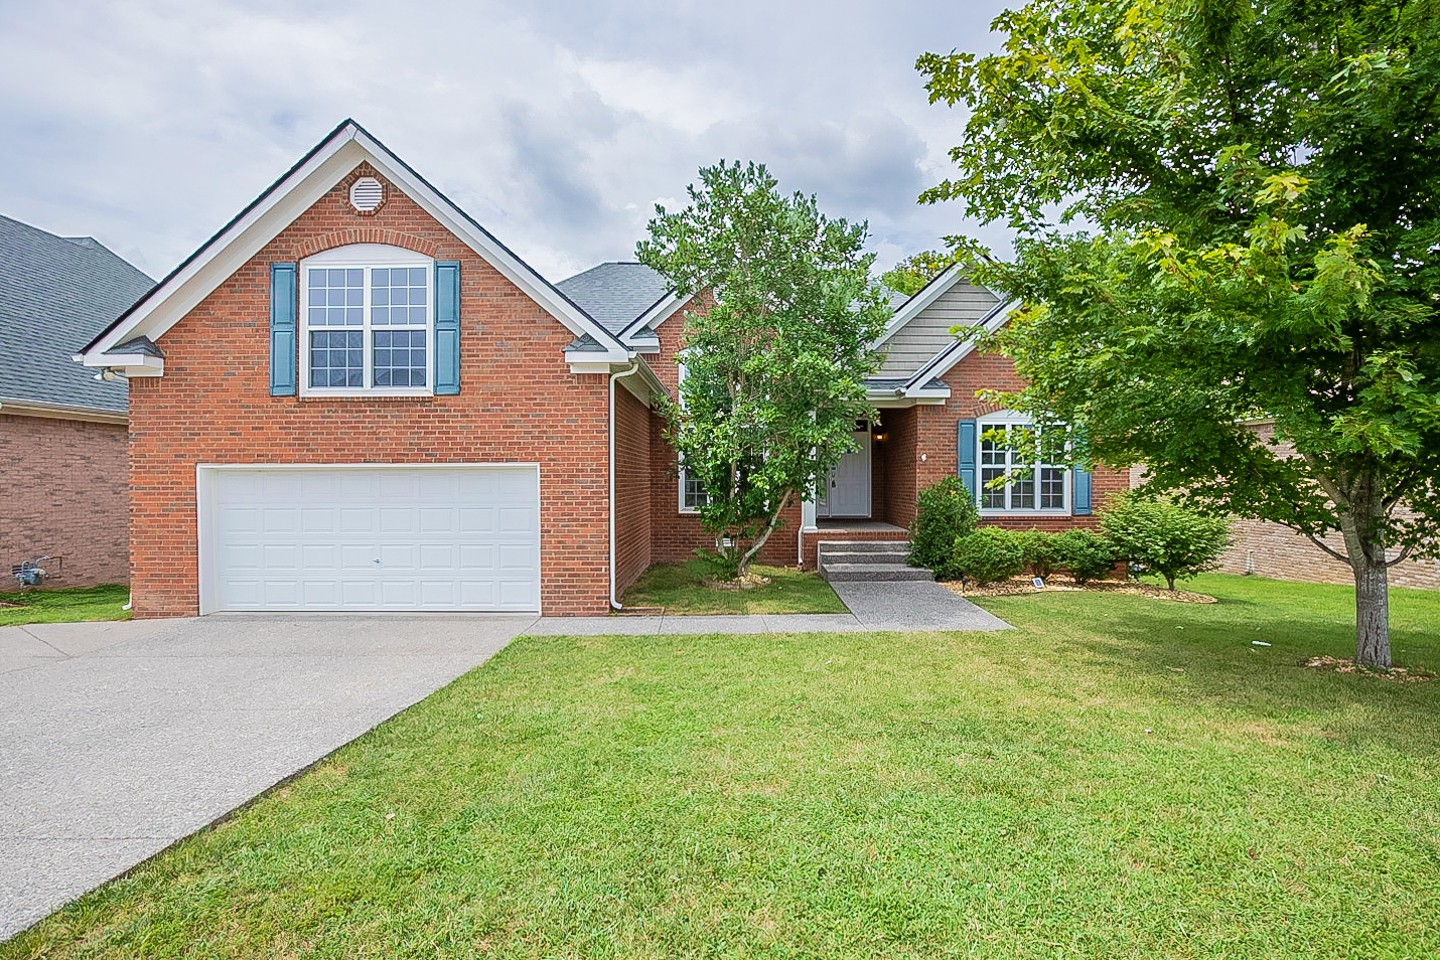 This Spring Hill two-story home offers granite countertops, and a two-car garage.